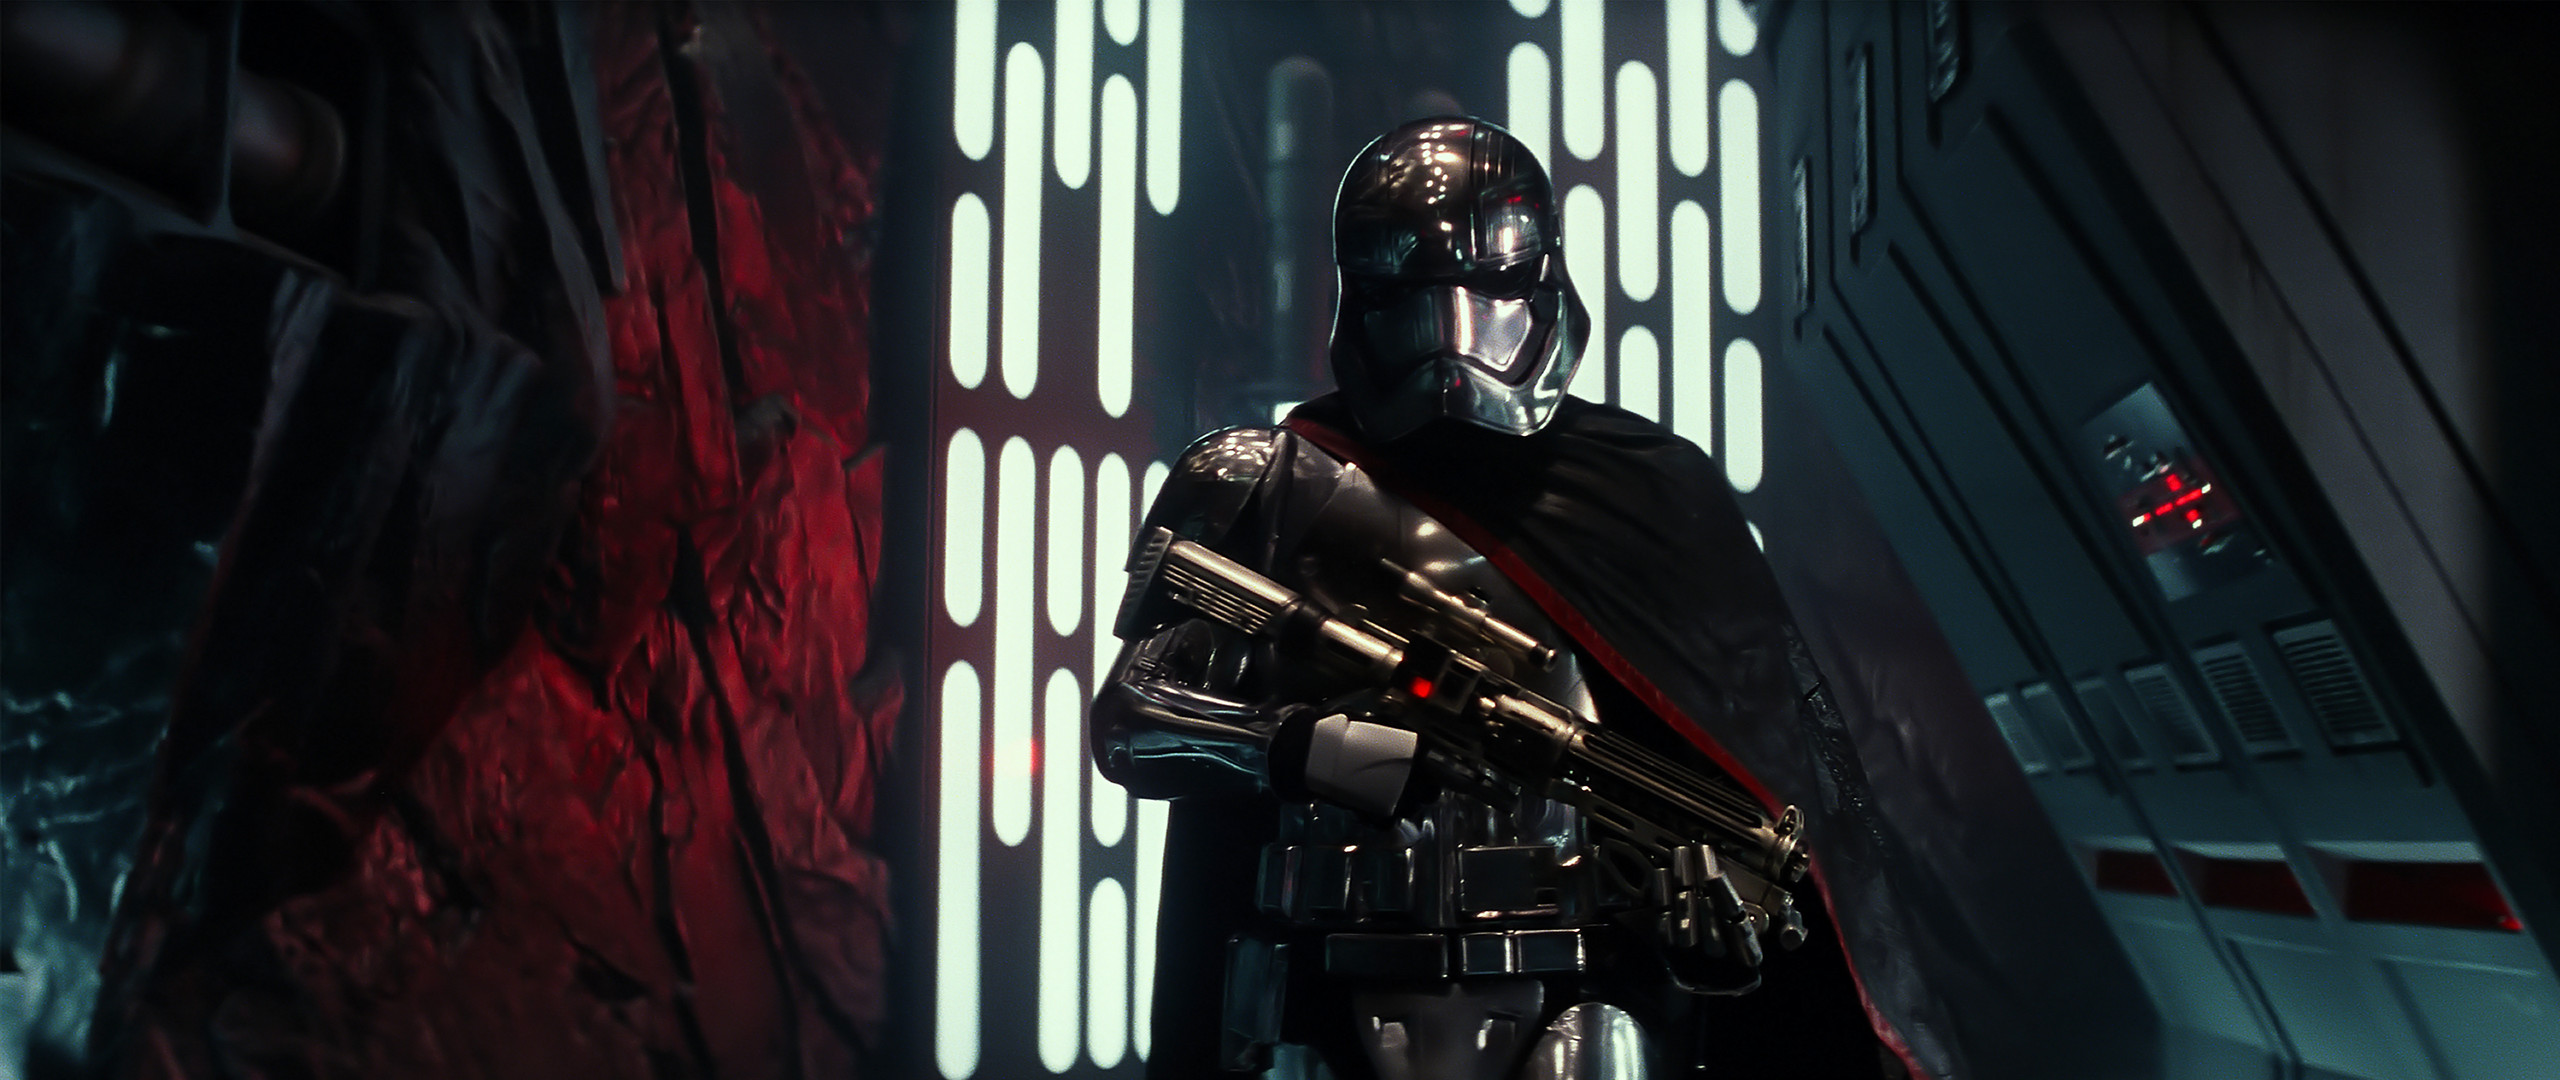 2560x1080 General  Star Wars: Episode VII - The Force Awakens Captain .